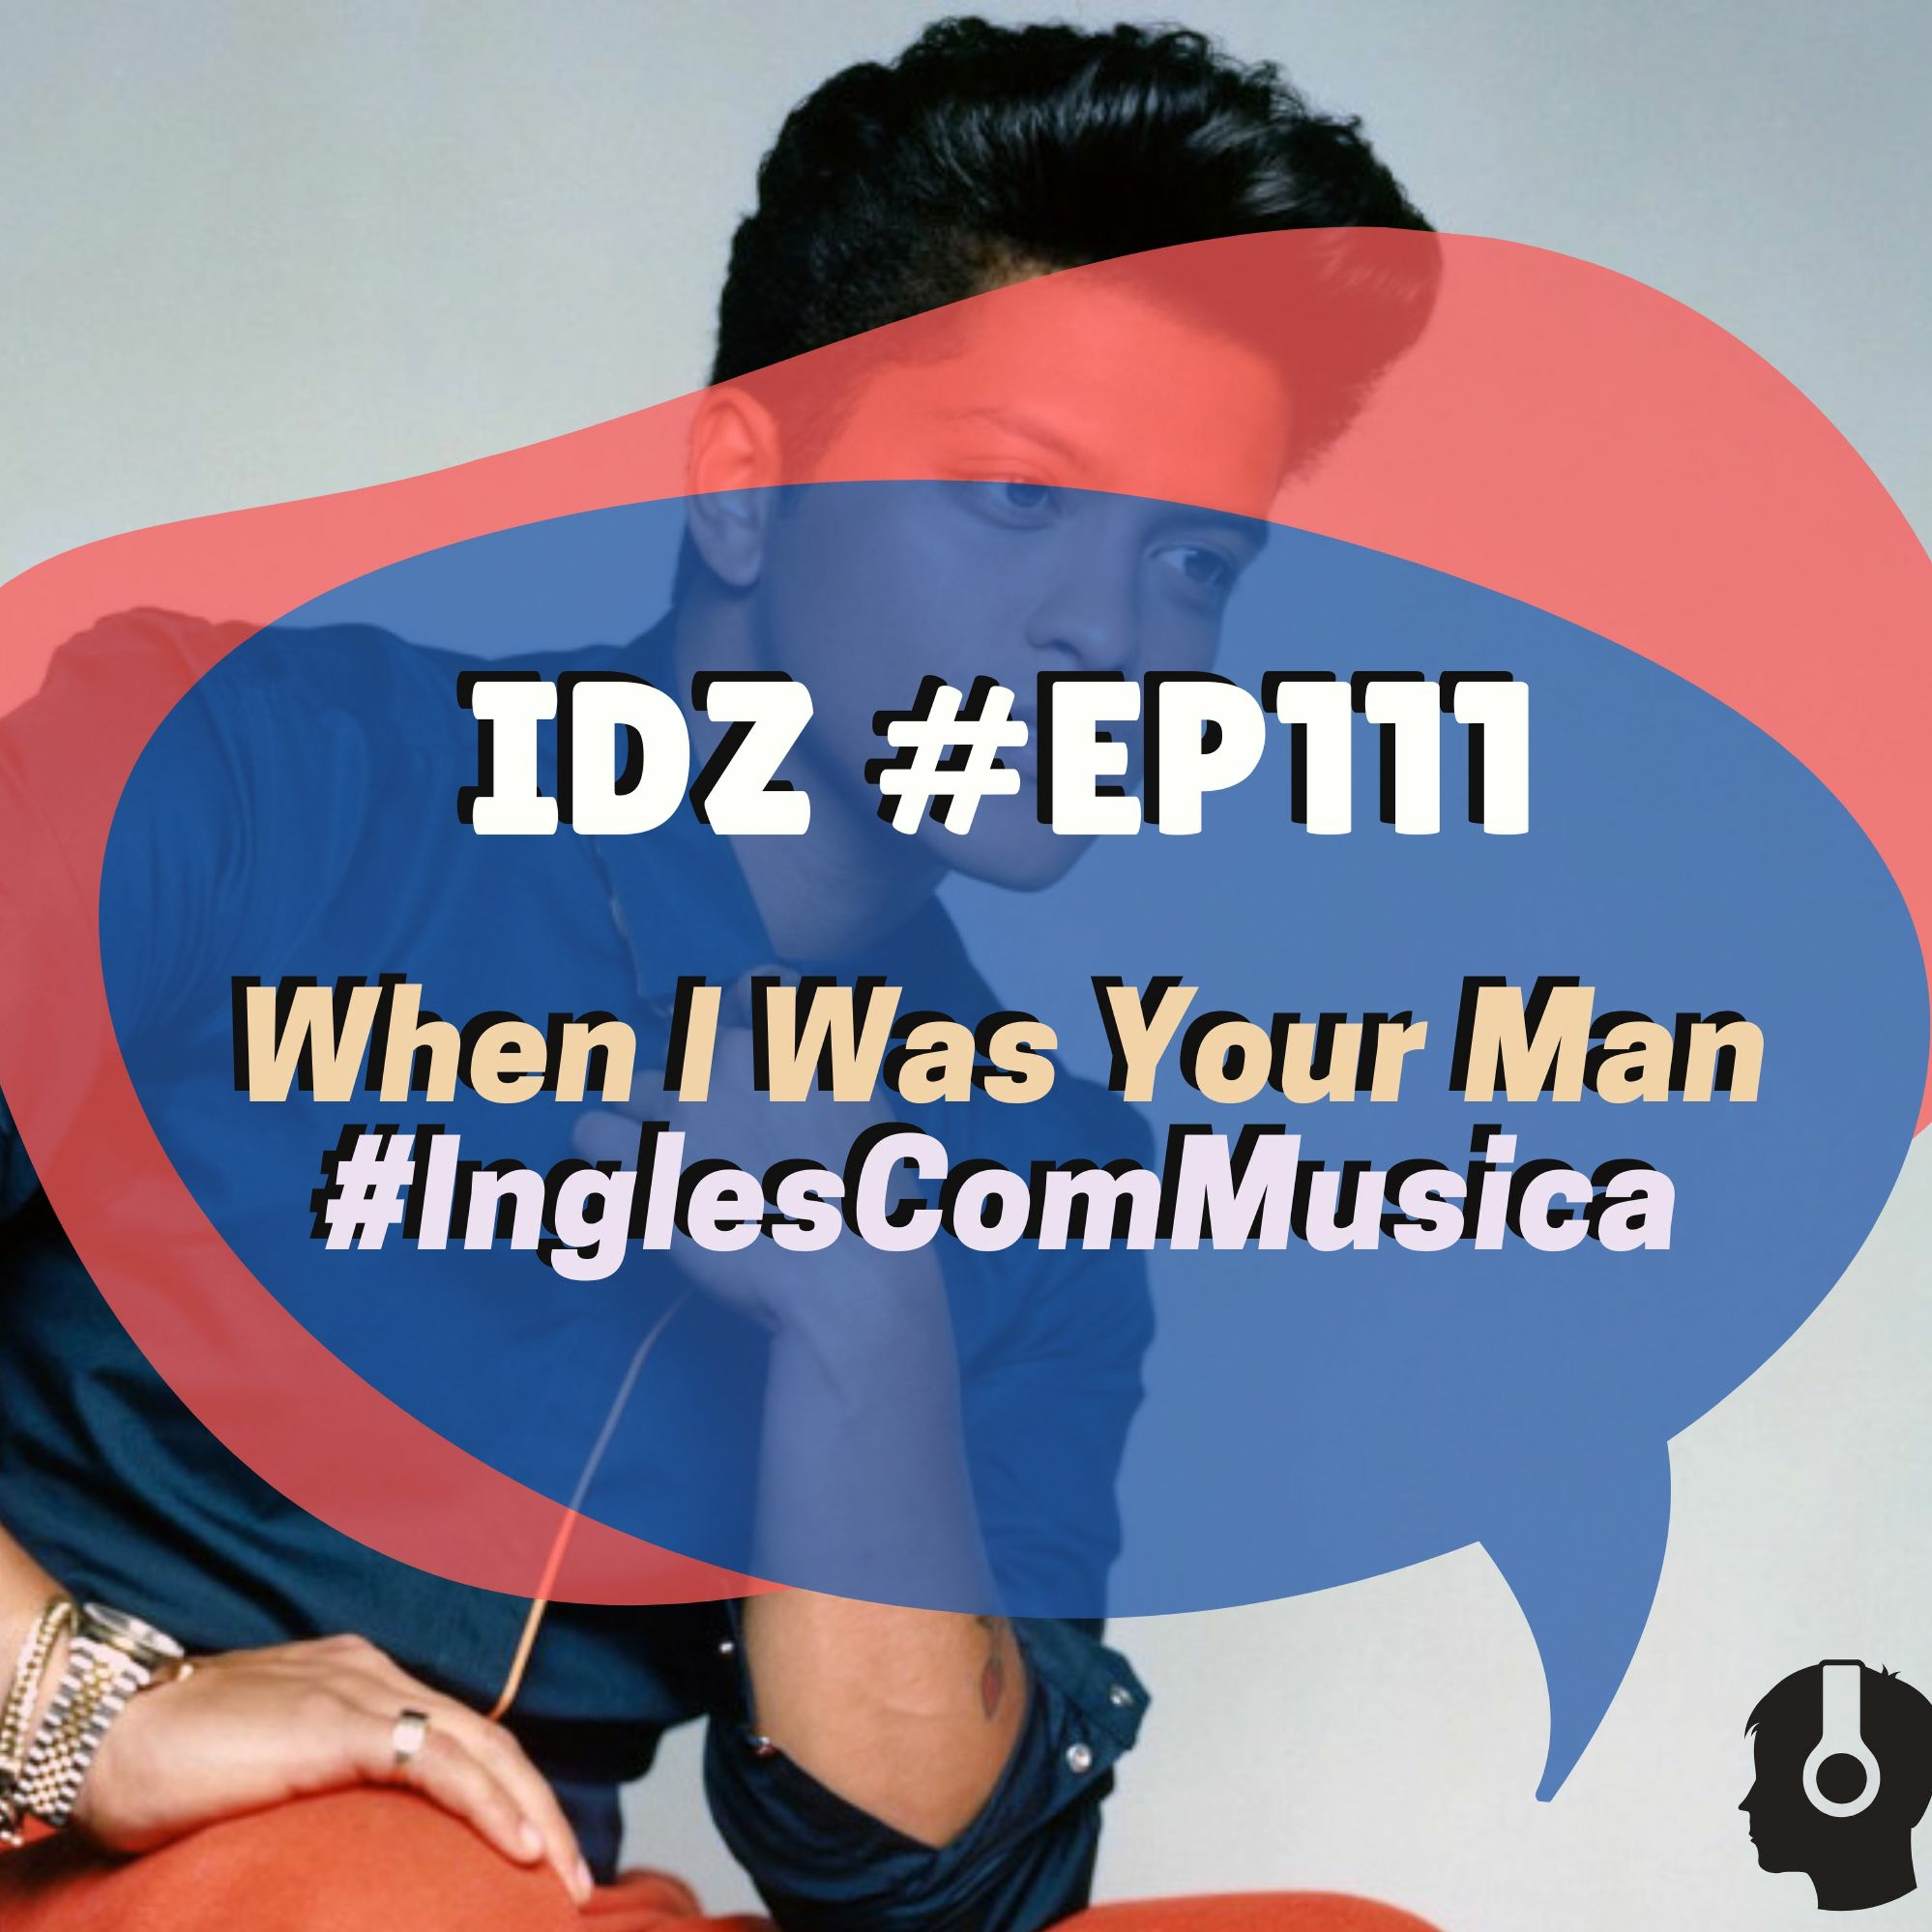 IDZ #111 - When I Was Your Man [Inglês com música - Bruno Mars]